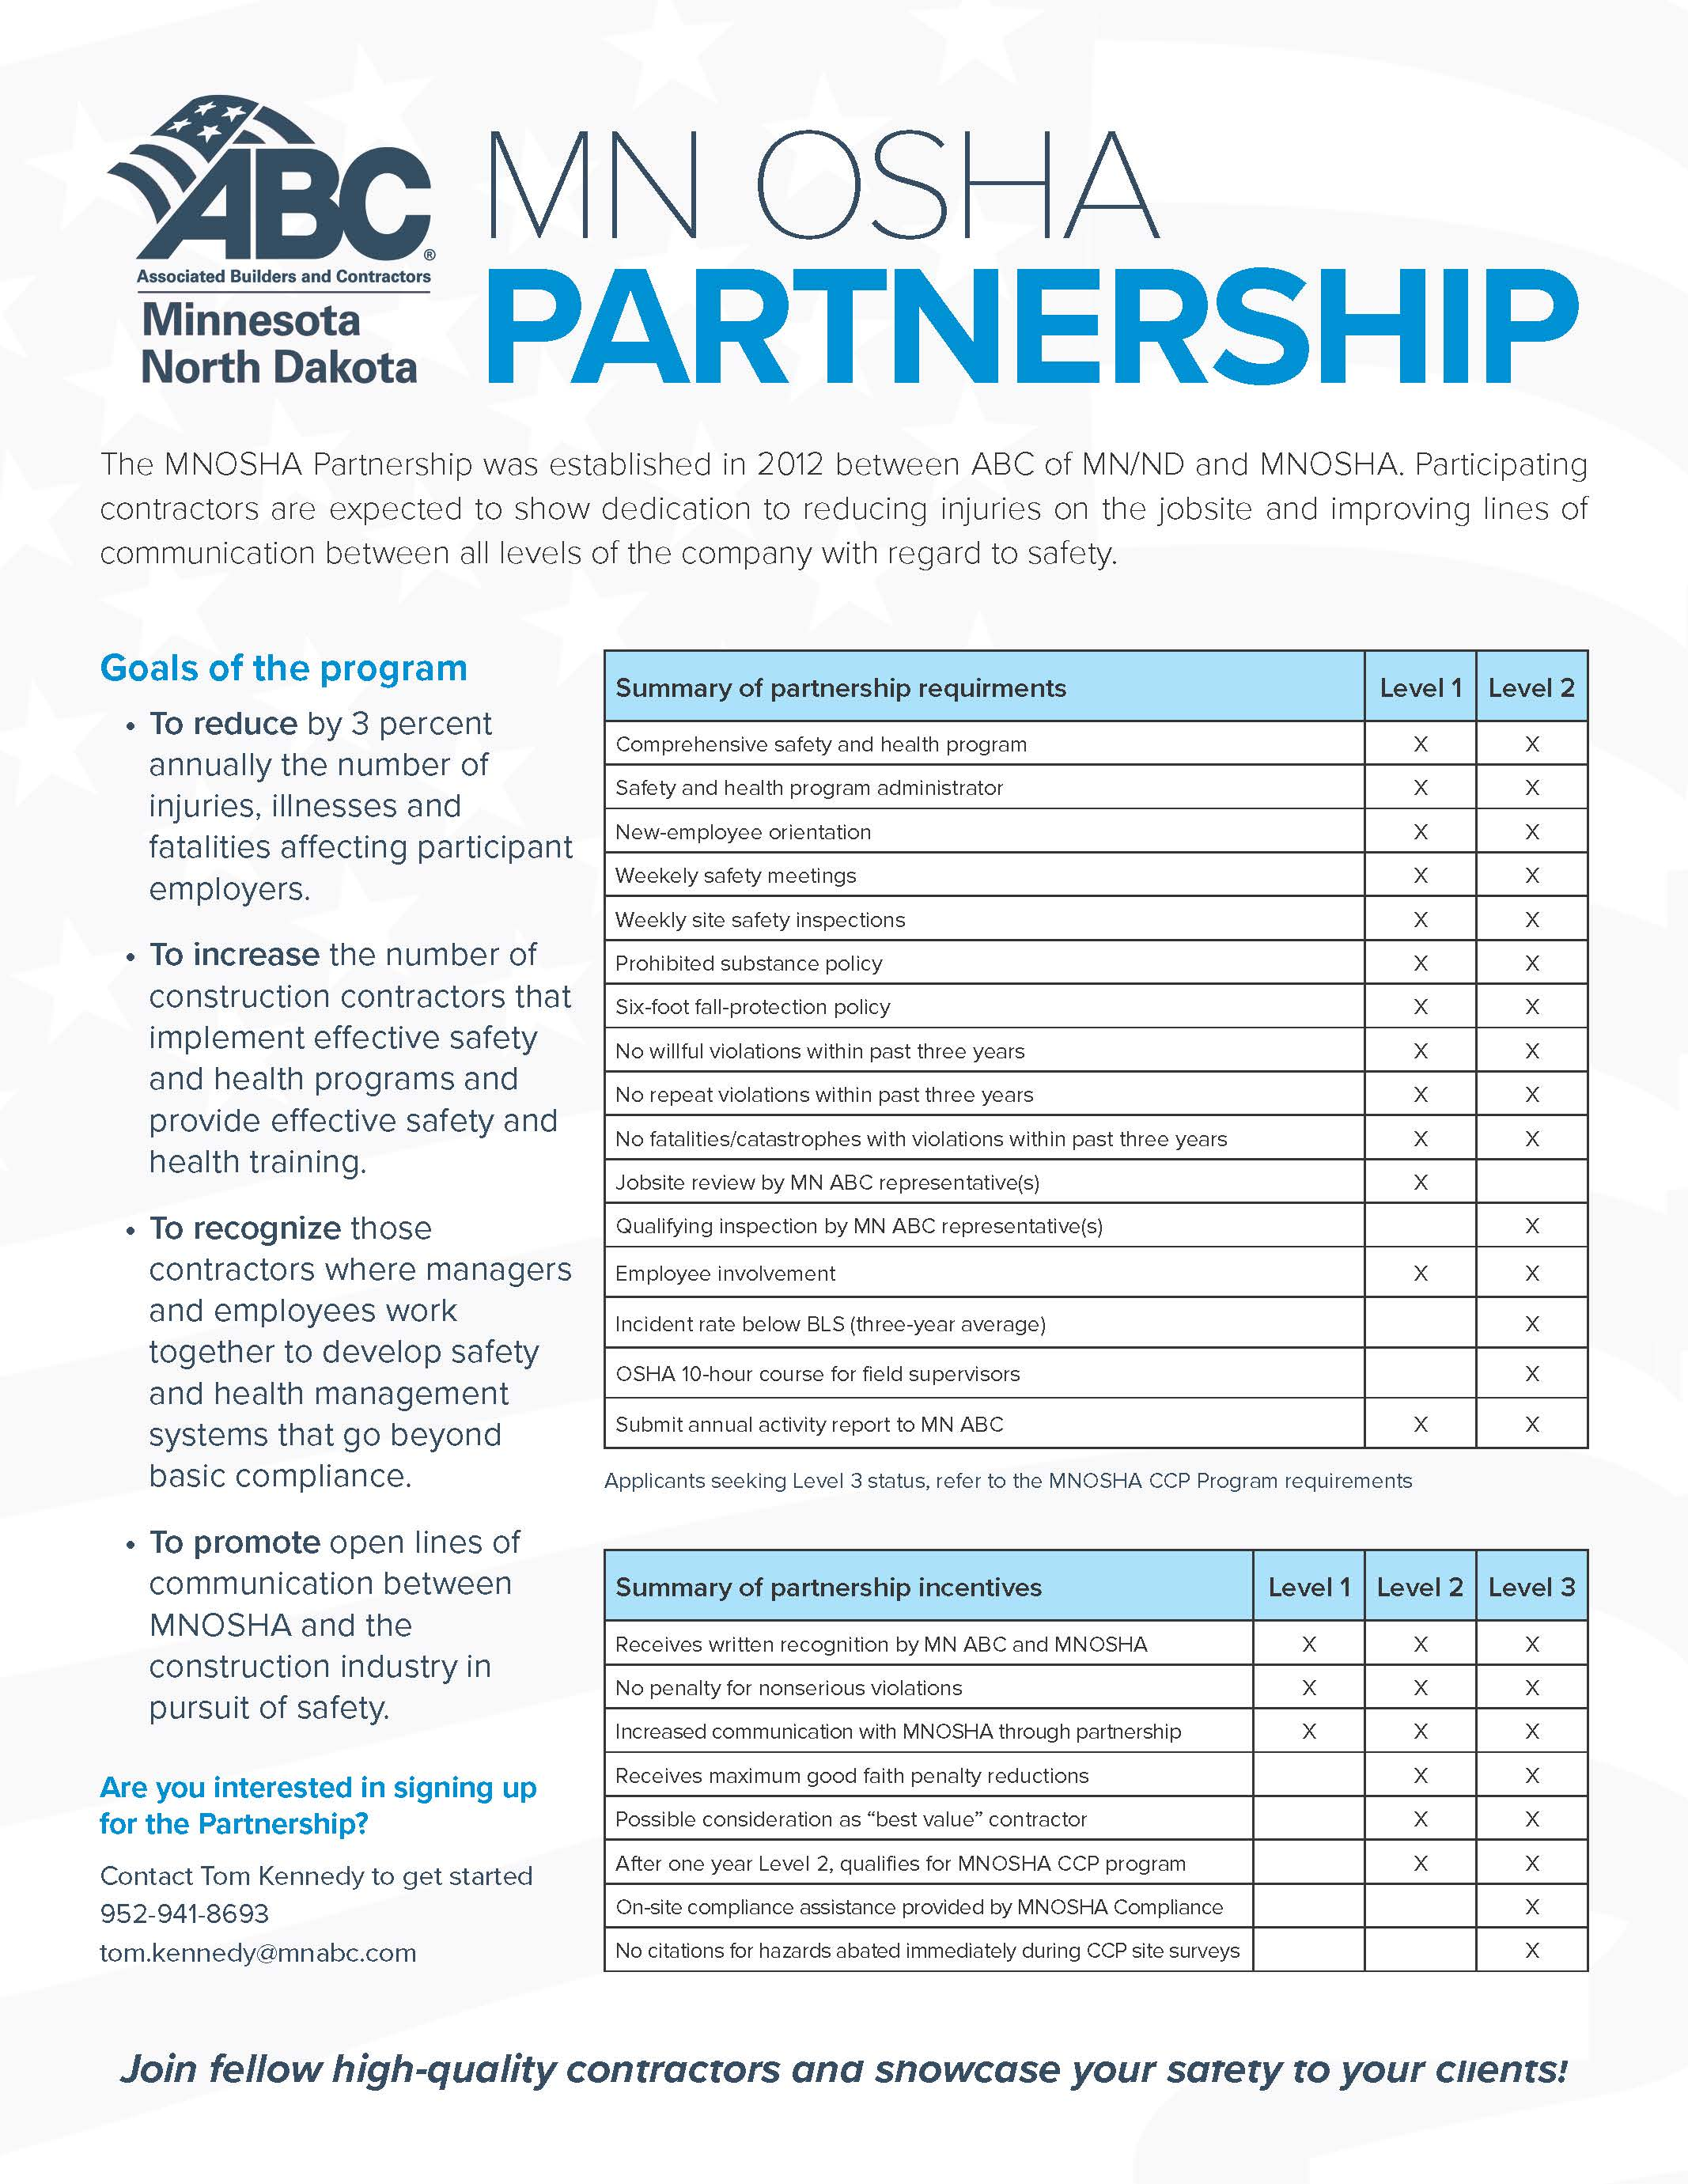 MNOSHA Partnership Flyer